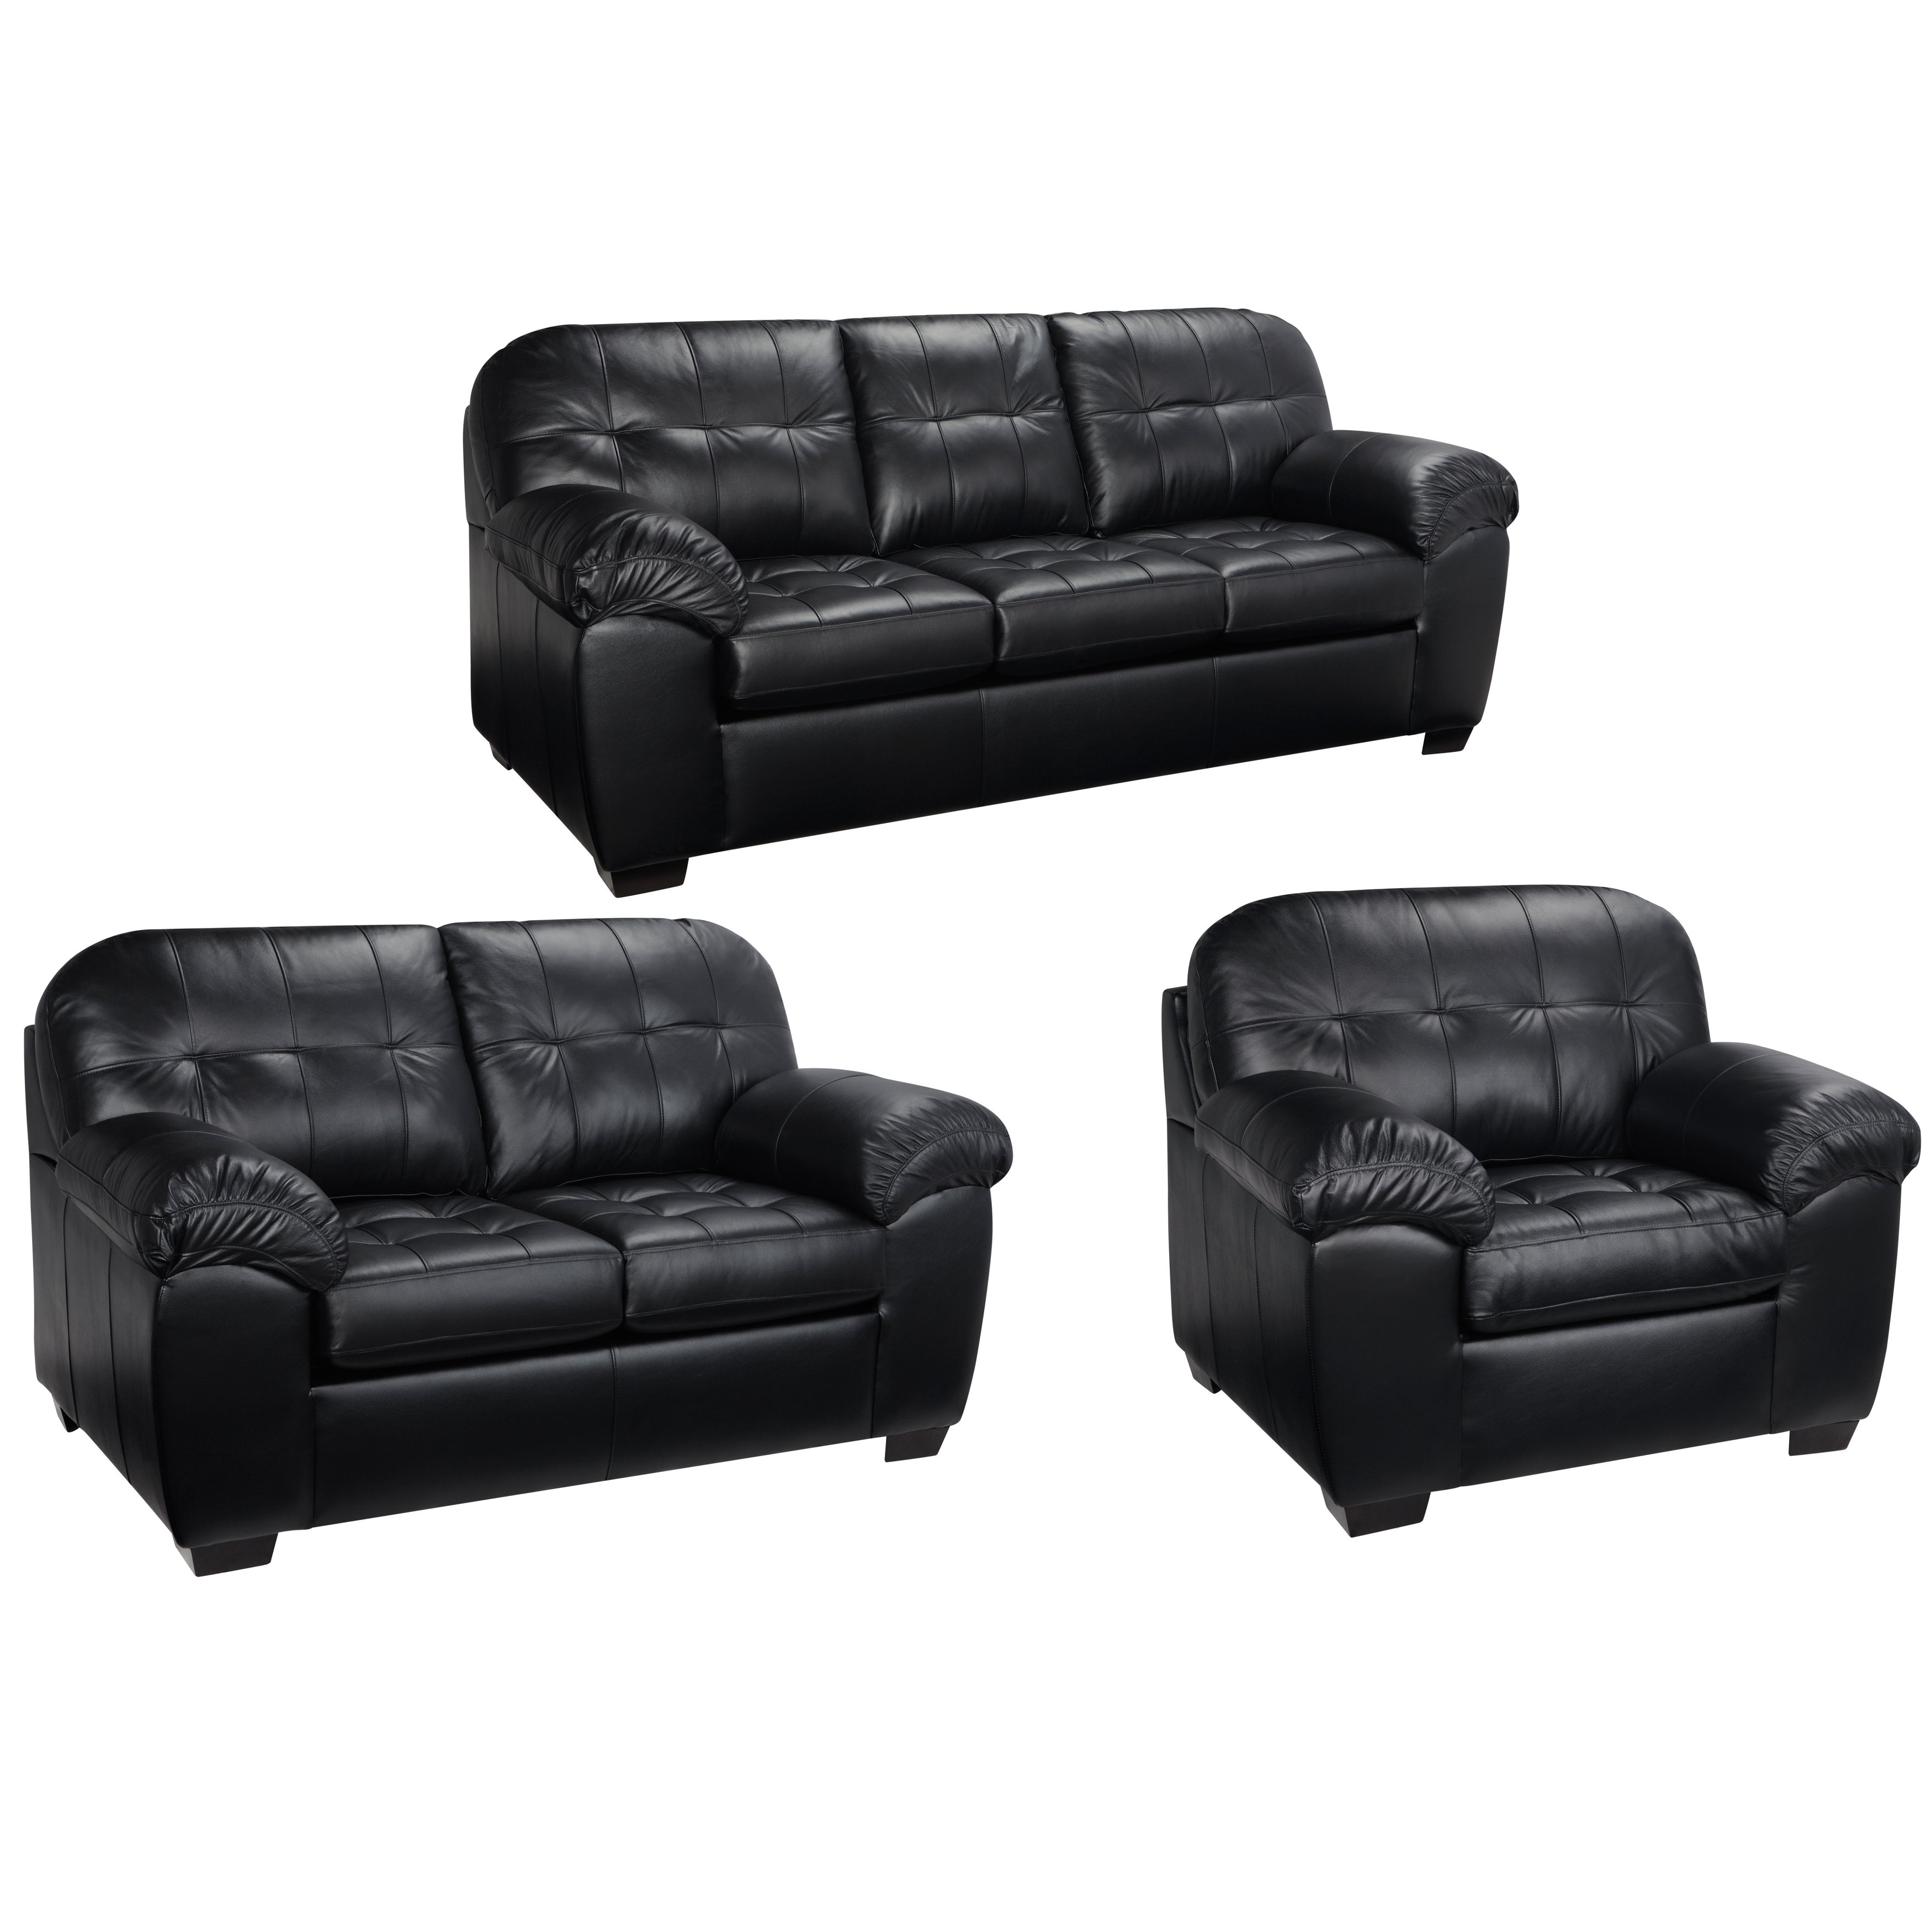 sofas great sofa stylish black and investment a is pin loveseat leather the best